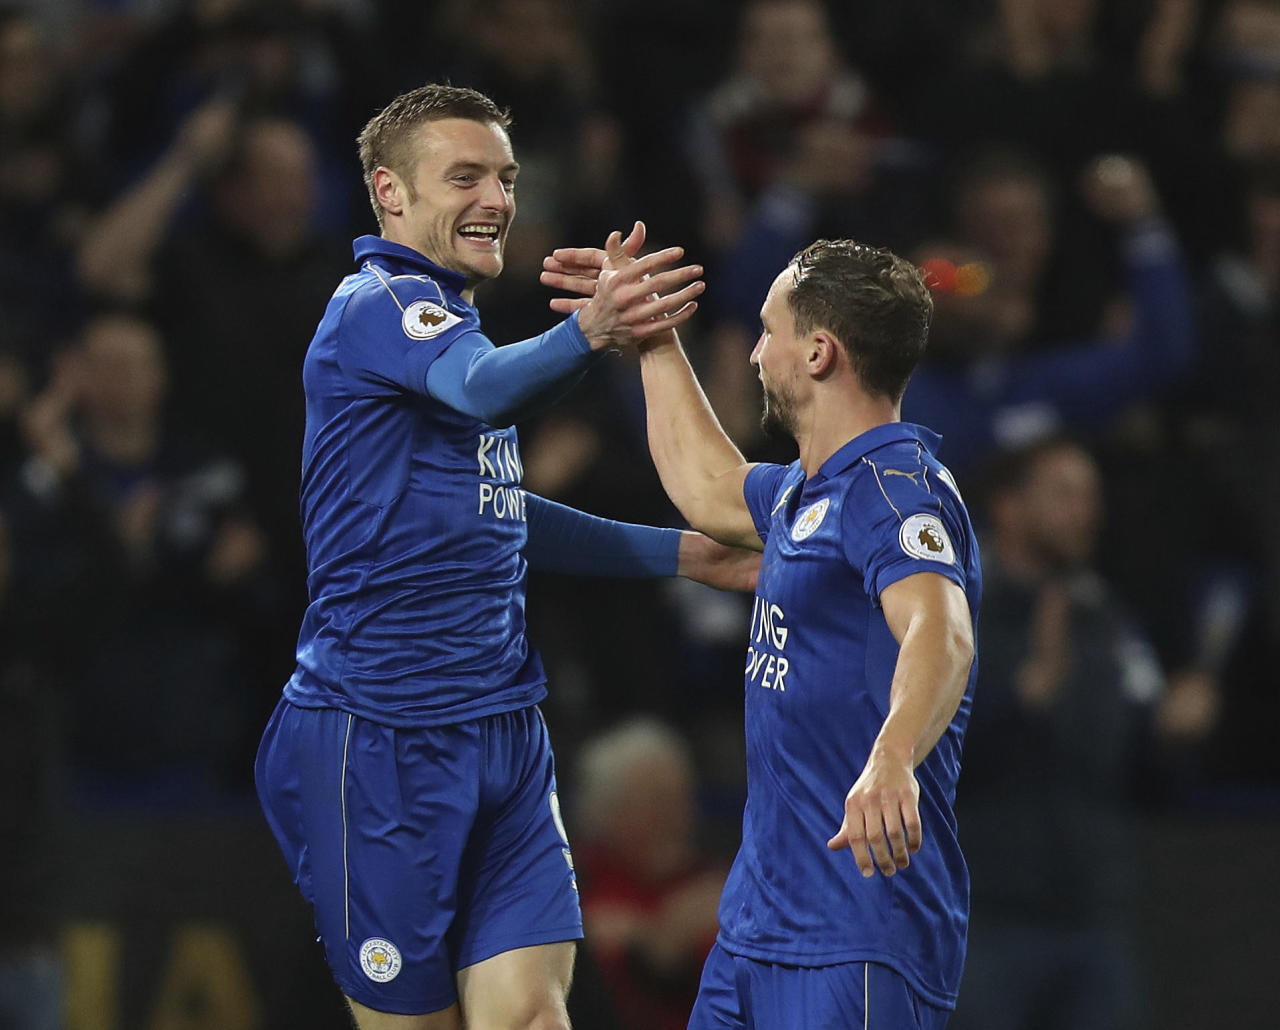 Jubel bei Leicester City